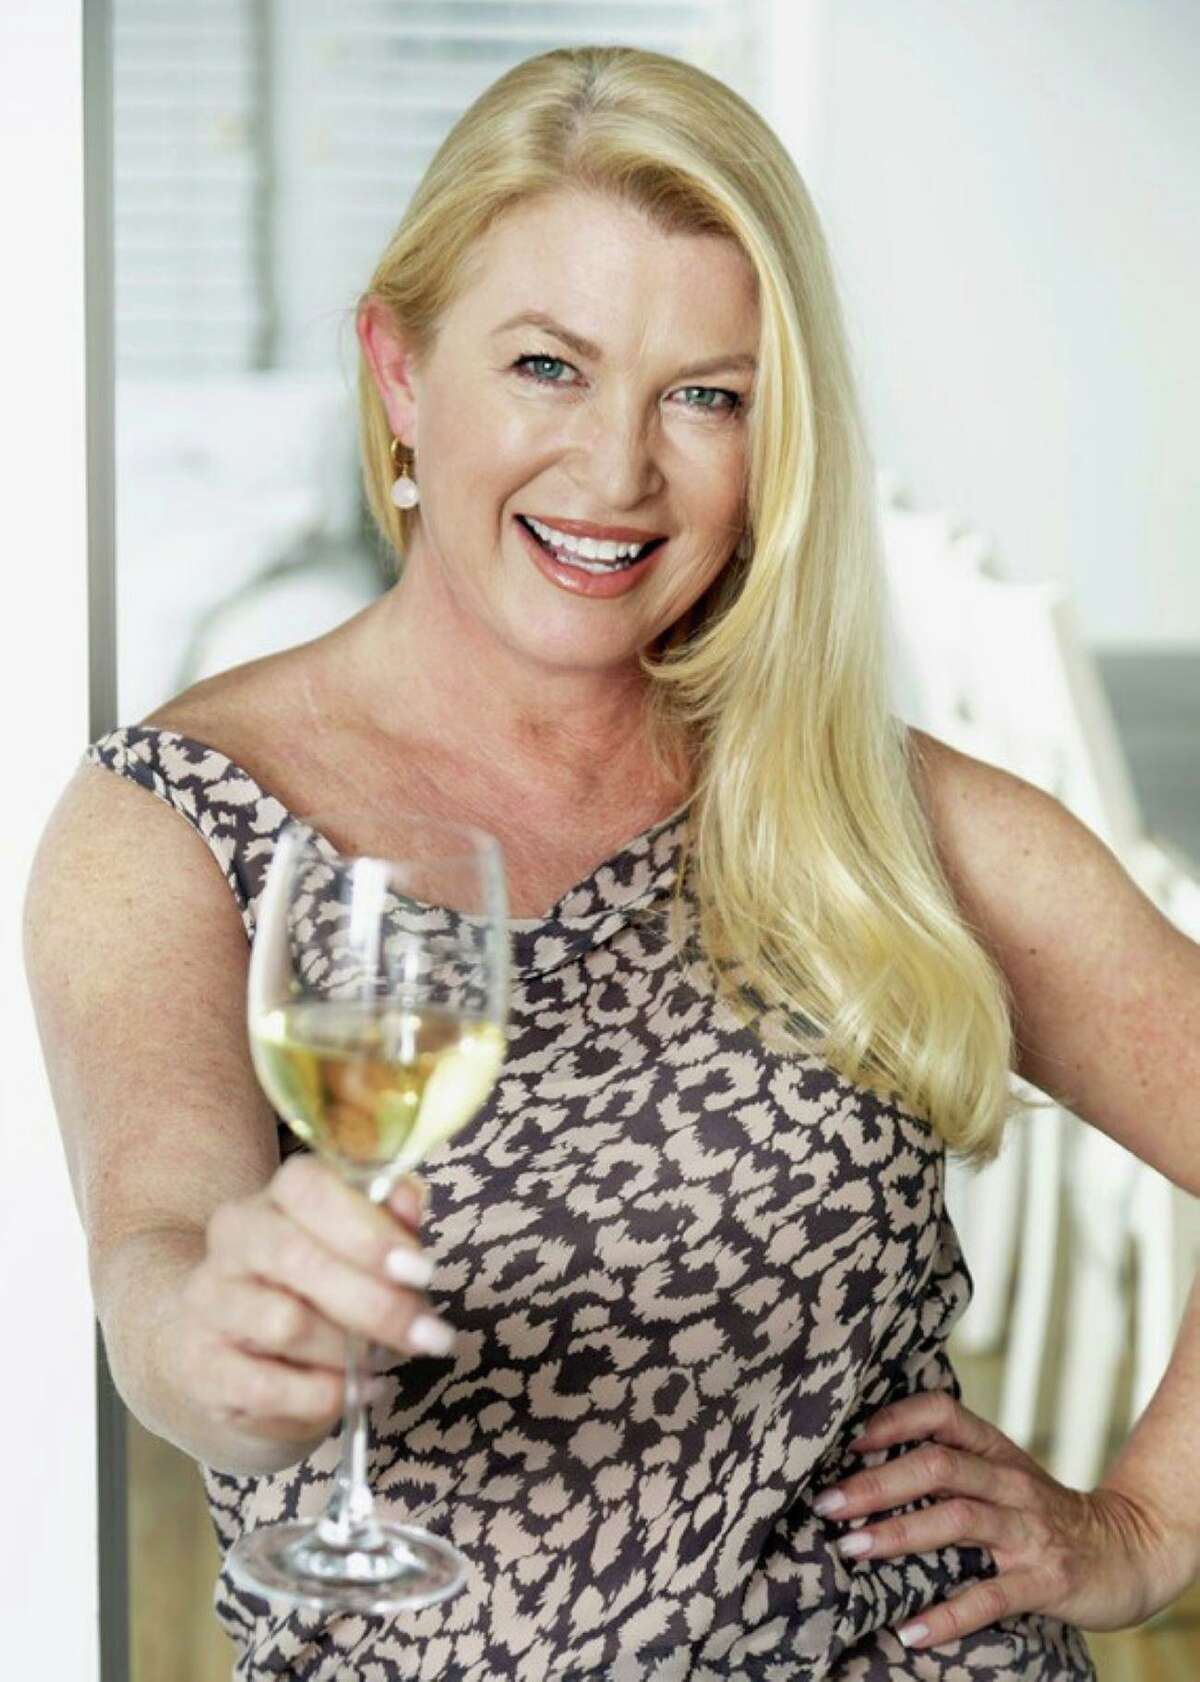 Fairfield resident Sandra Guibord, founder of Sandra's Wine Life, is an expert with two decades of experience in the industry. She shares great ideas for summer entertaining and says you don't have to spend a fortune for a flavorful wine.